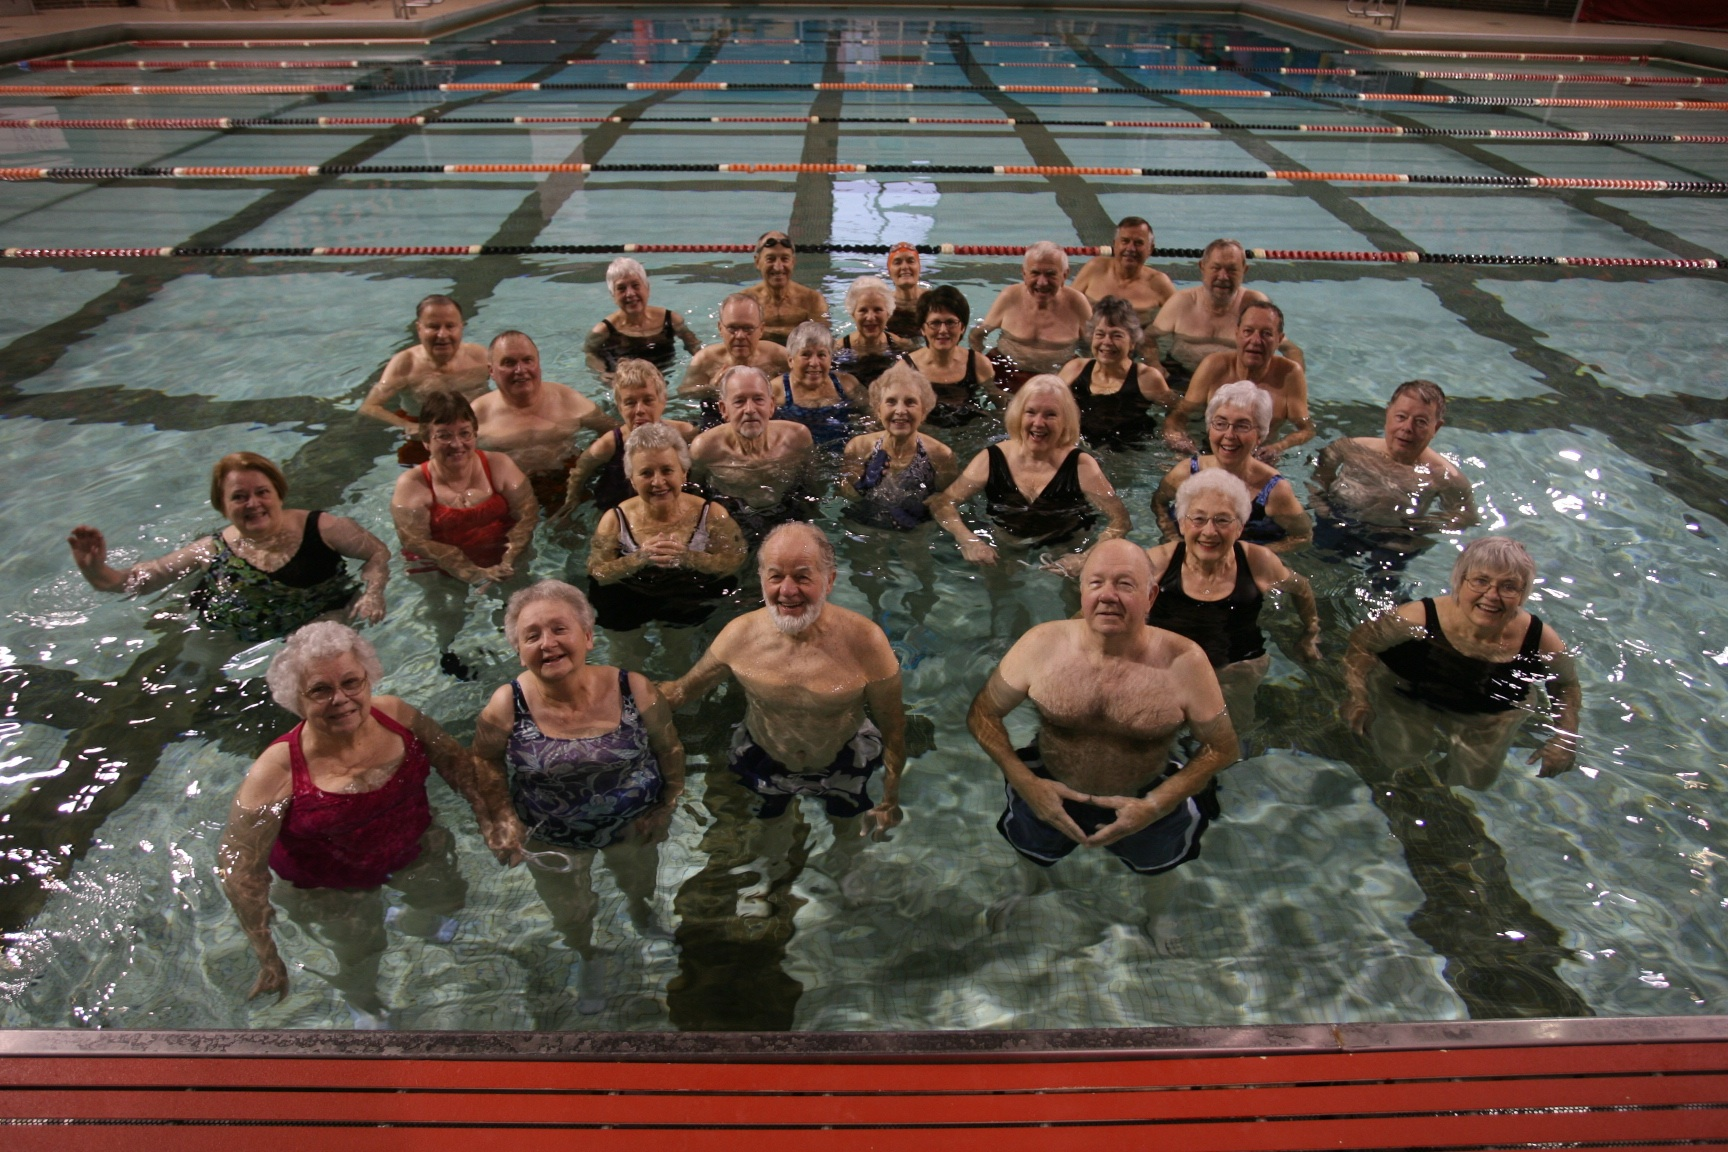 men and women together for a group shot in the pool